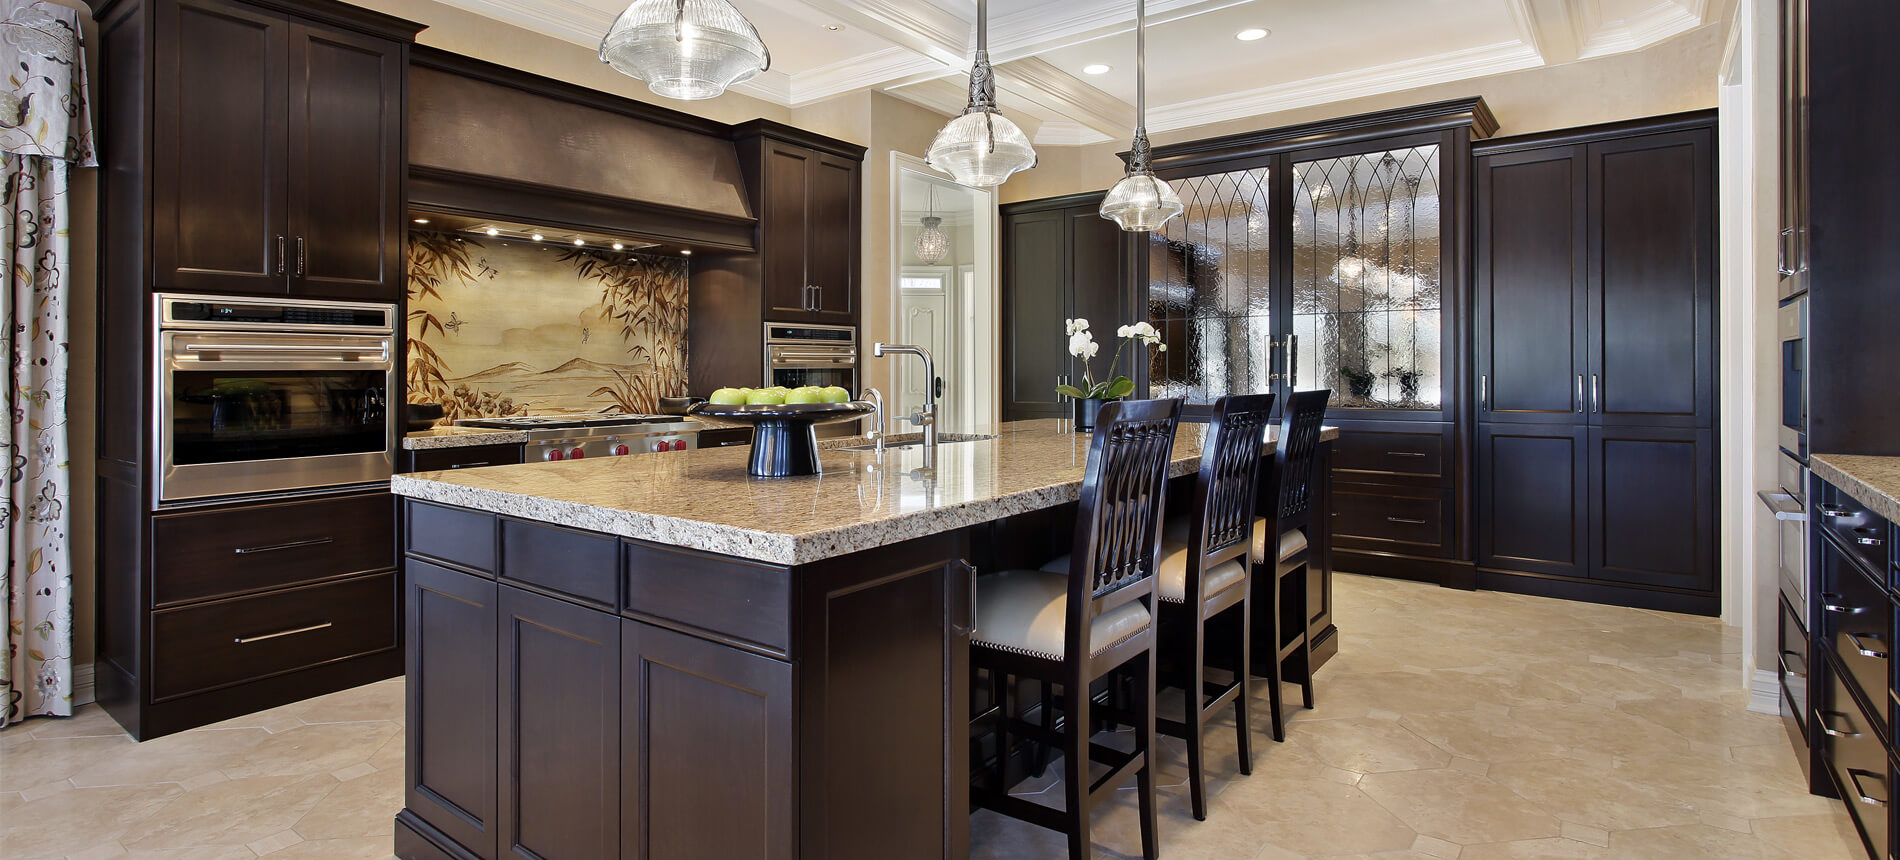 Kitchen Remodeling  Scardina Home Services